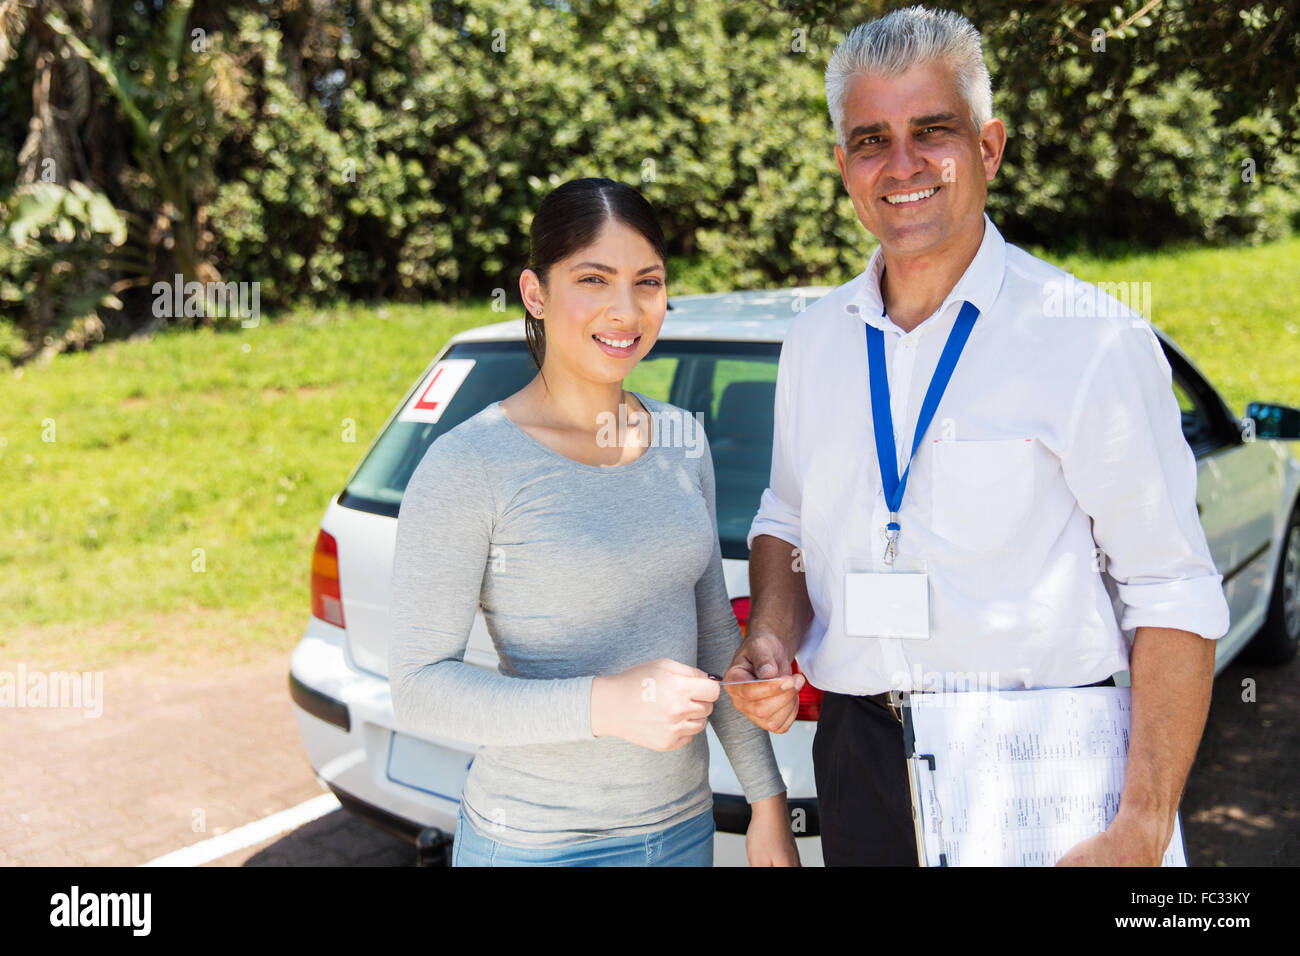 portrait of driving instructor handing driving license to student driver Stock Photo